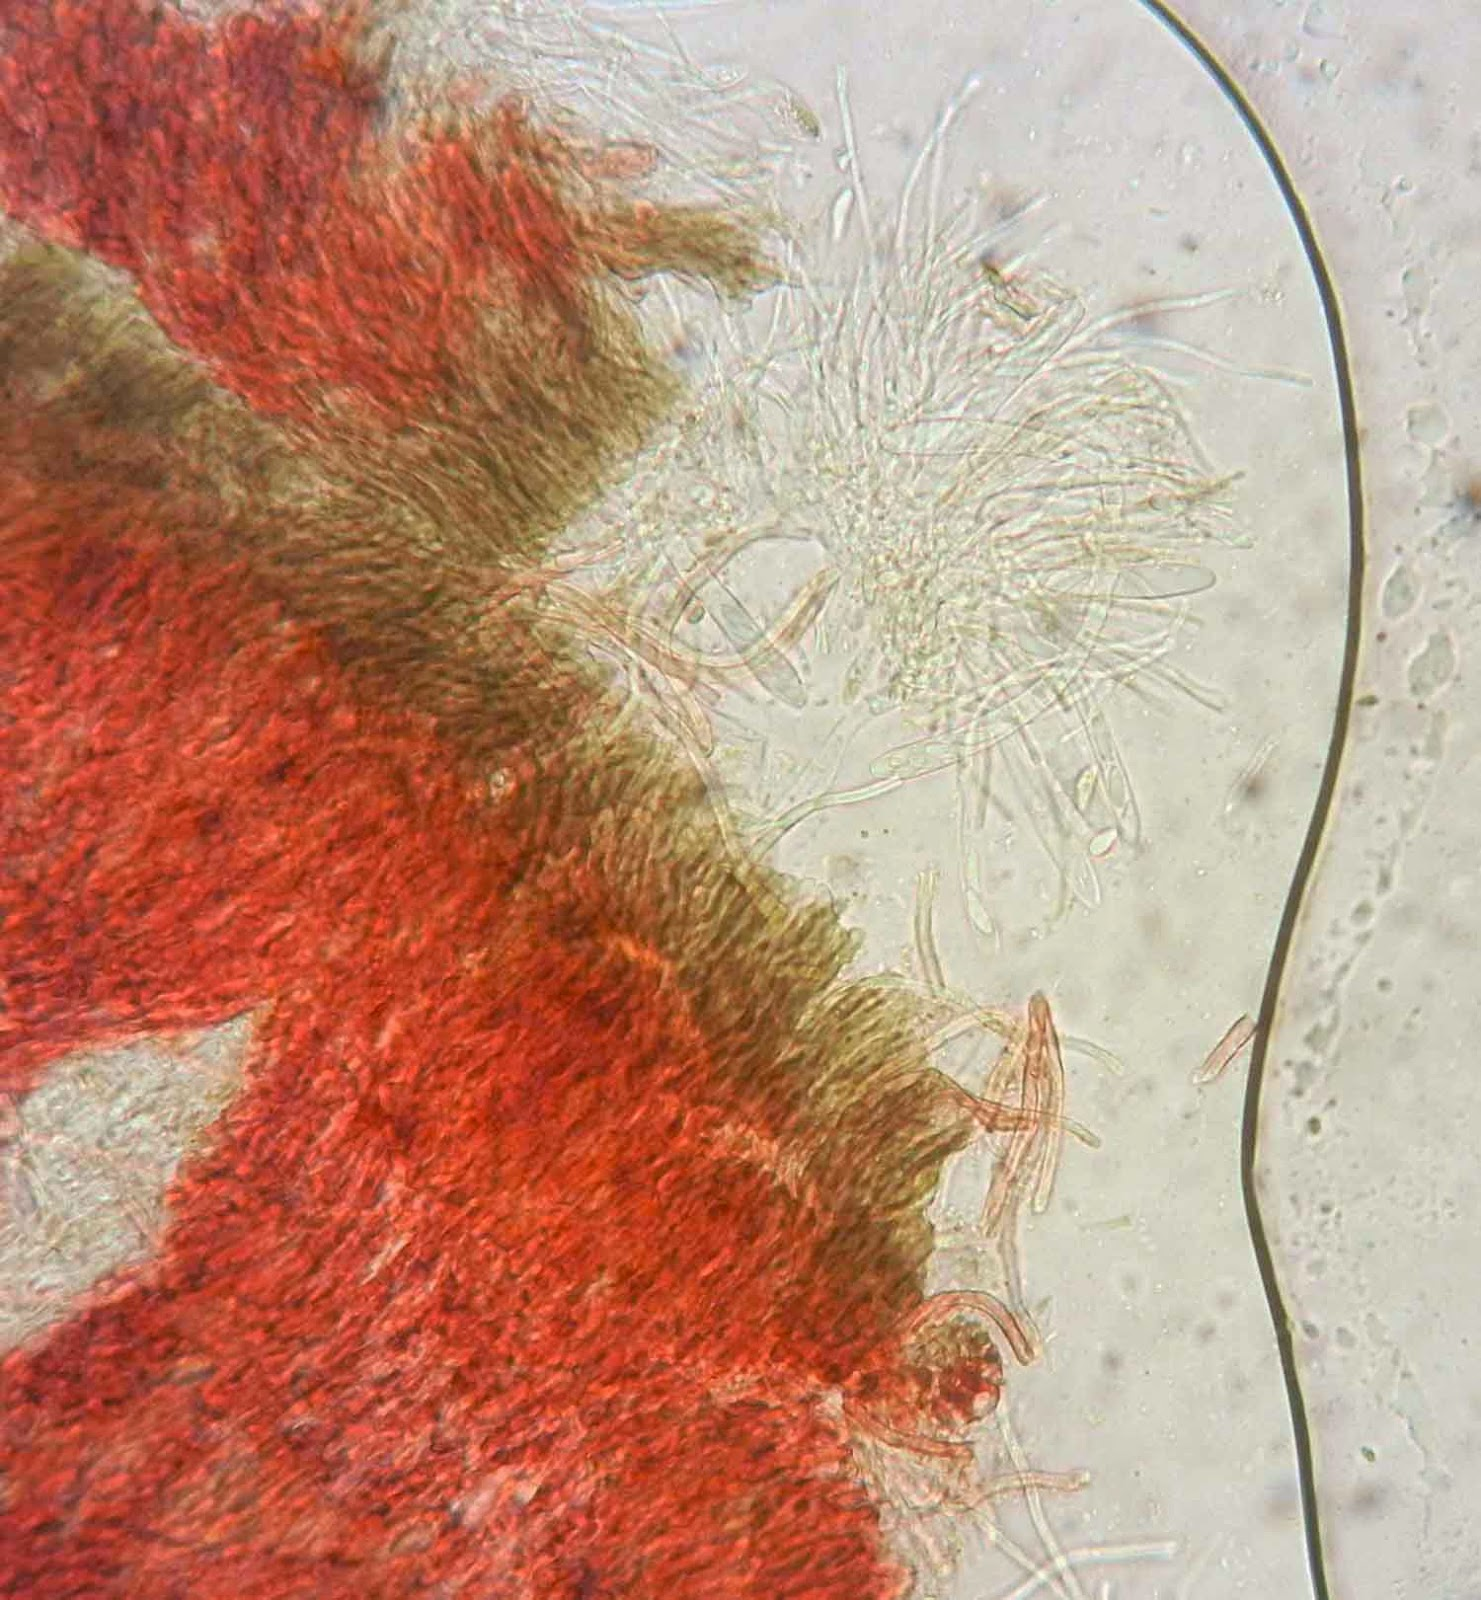 Patinellaria sanguinea under microscope